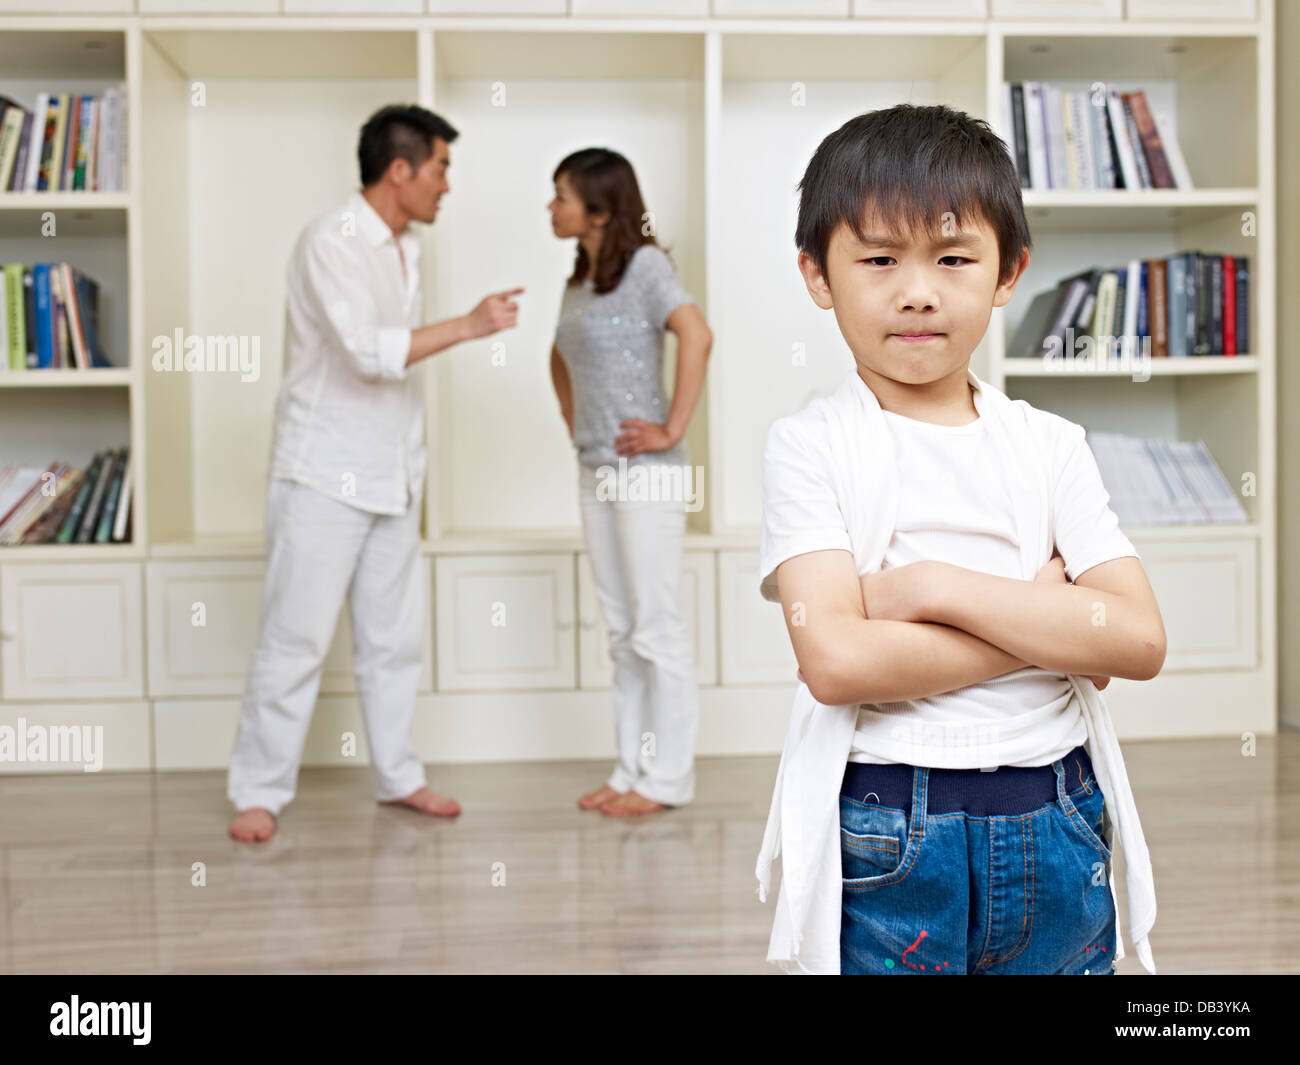 Asian Child and Quarreling Parents - Stock Image